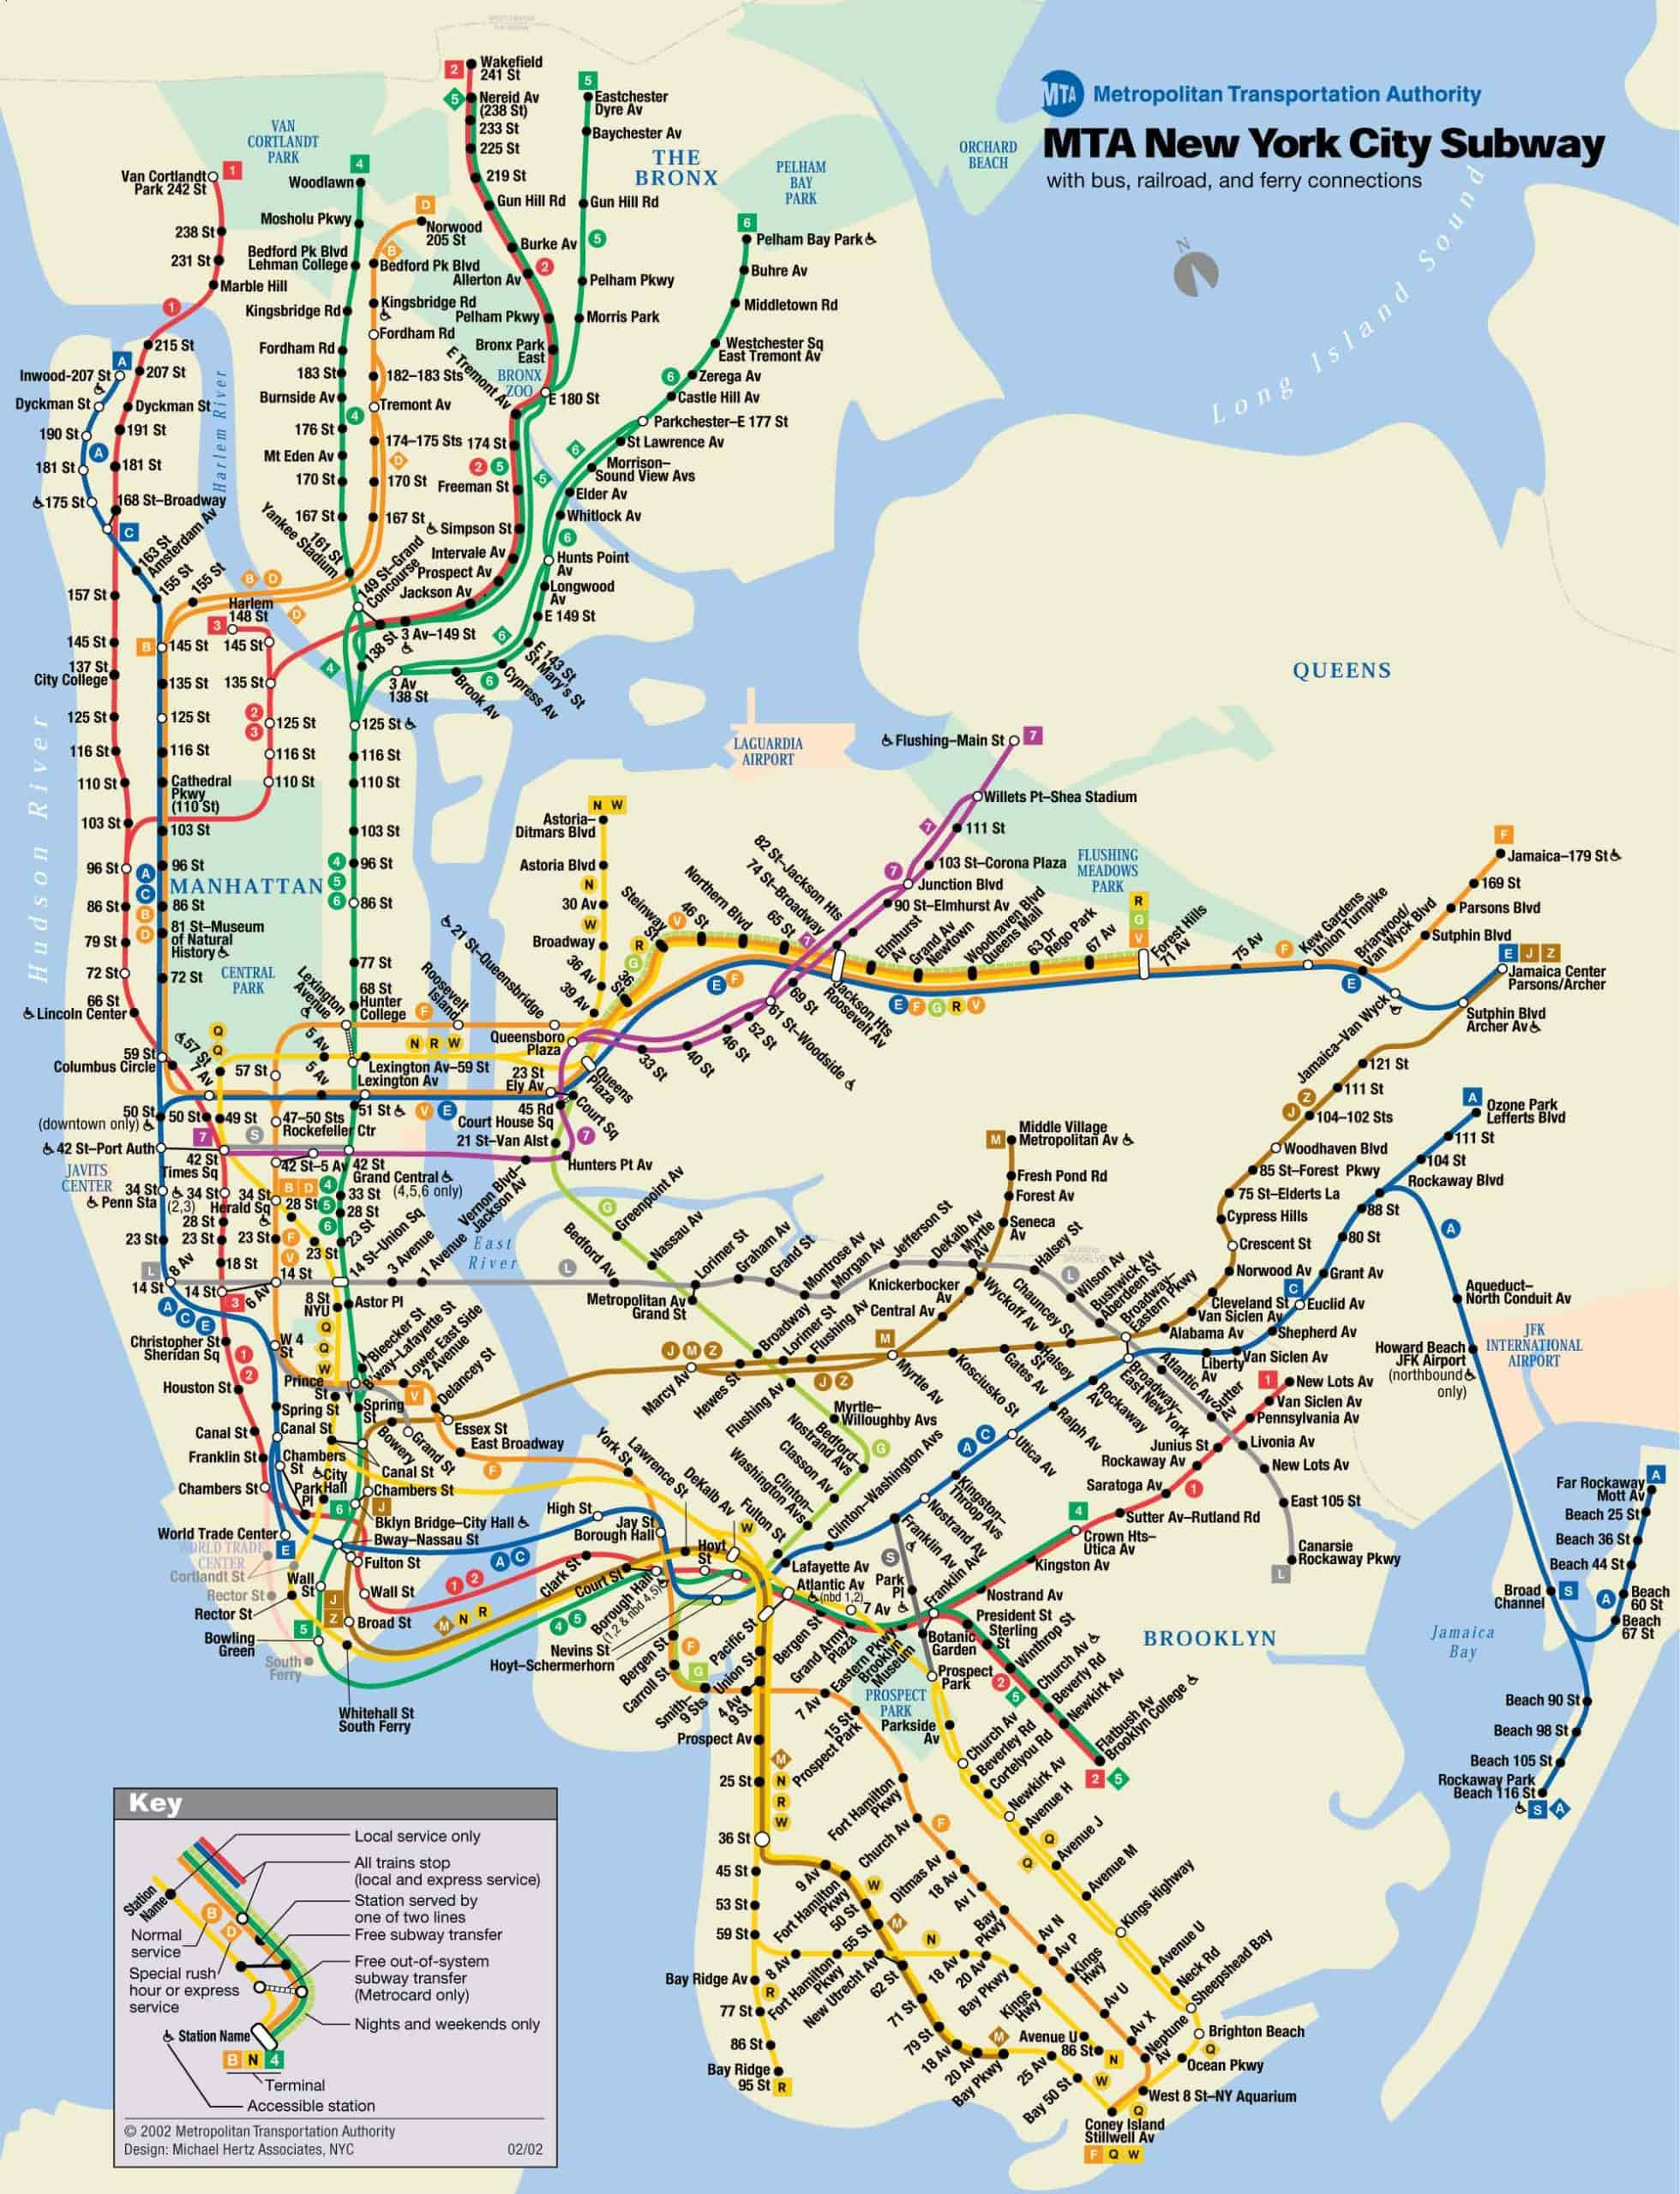 Nyc Subway Station Maps.Michael Hertz Designer Of Nyc S Iconic Subway Map Dies At 87